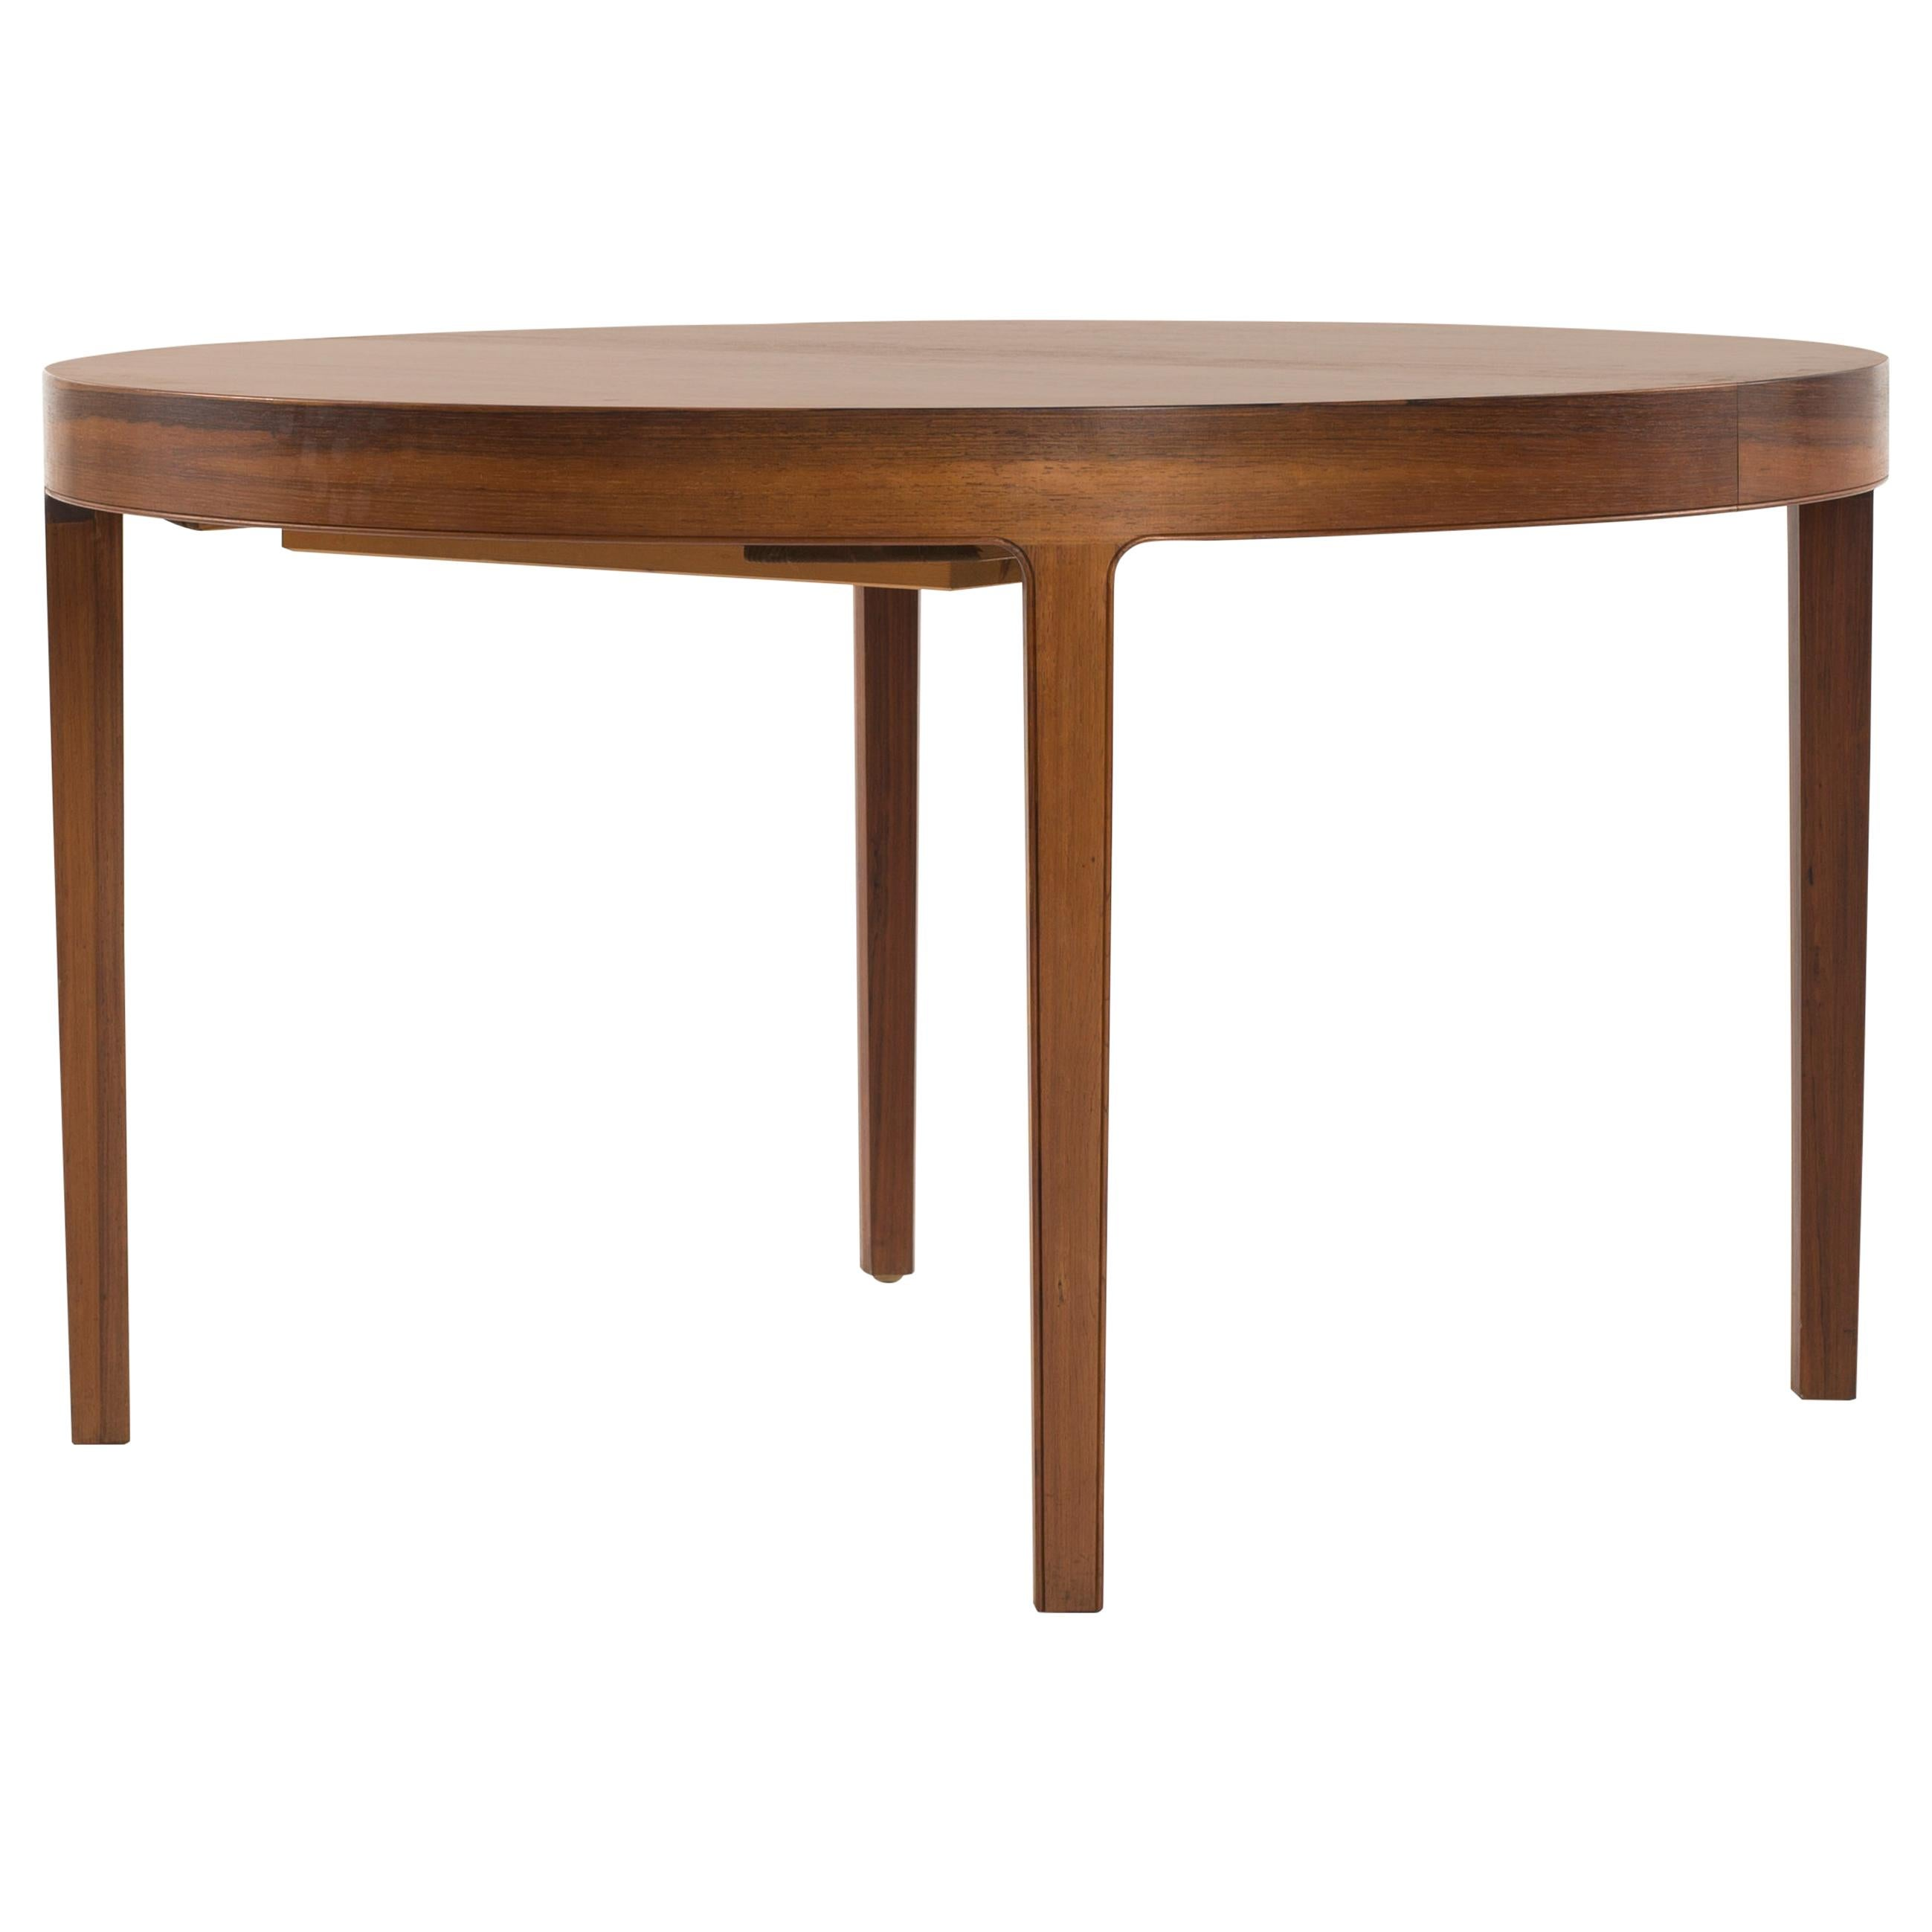 Ole Wanscher Extendable Dinning Table in Rosewood